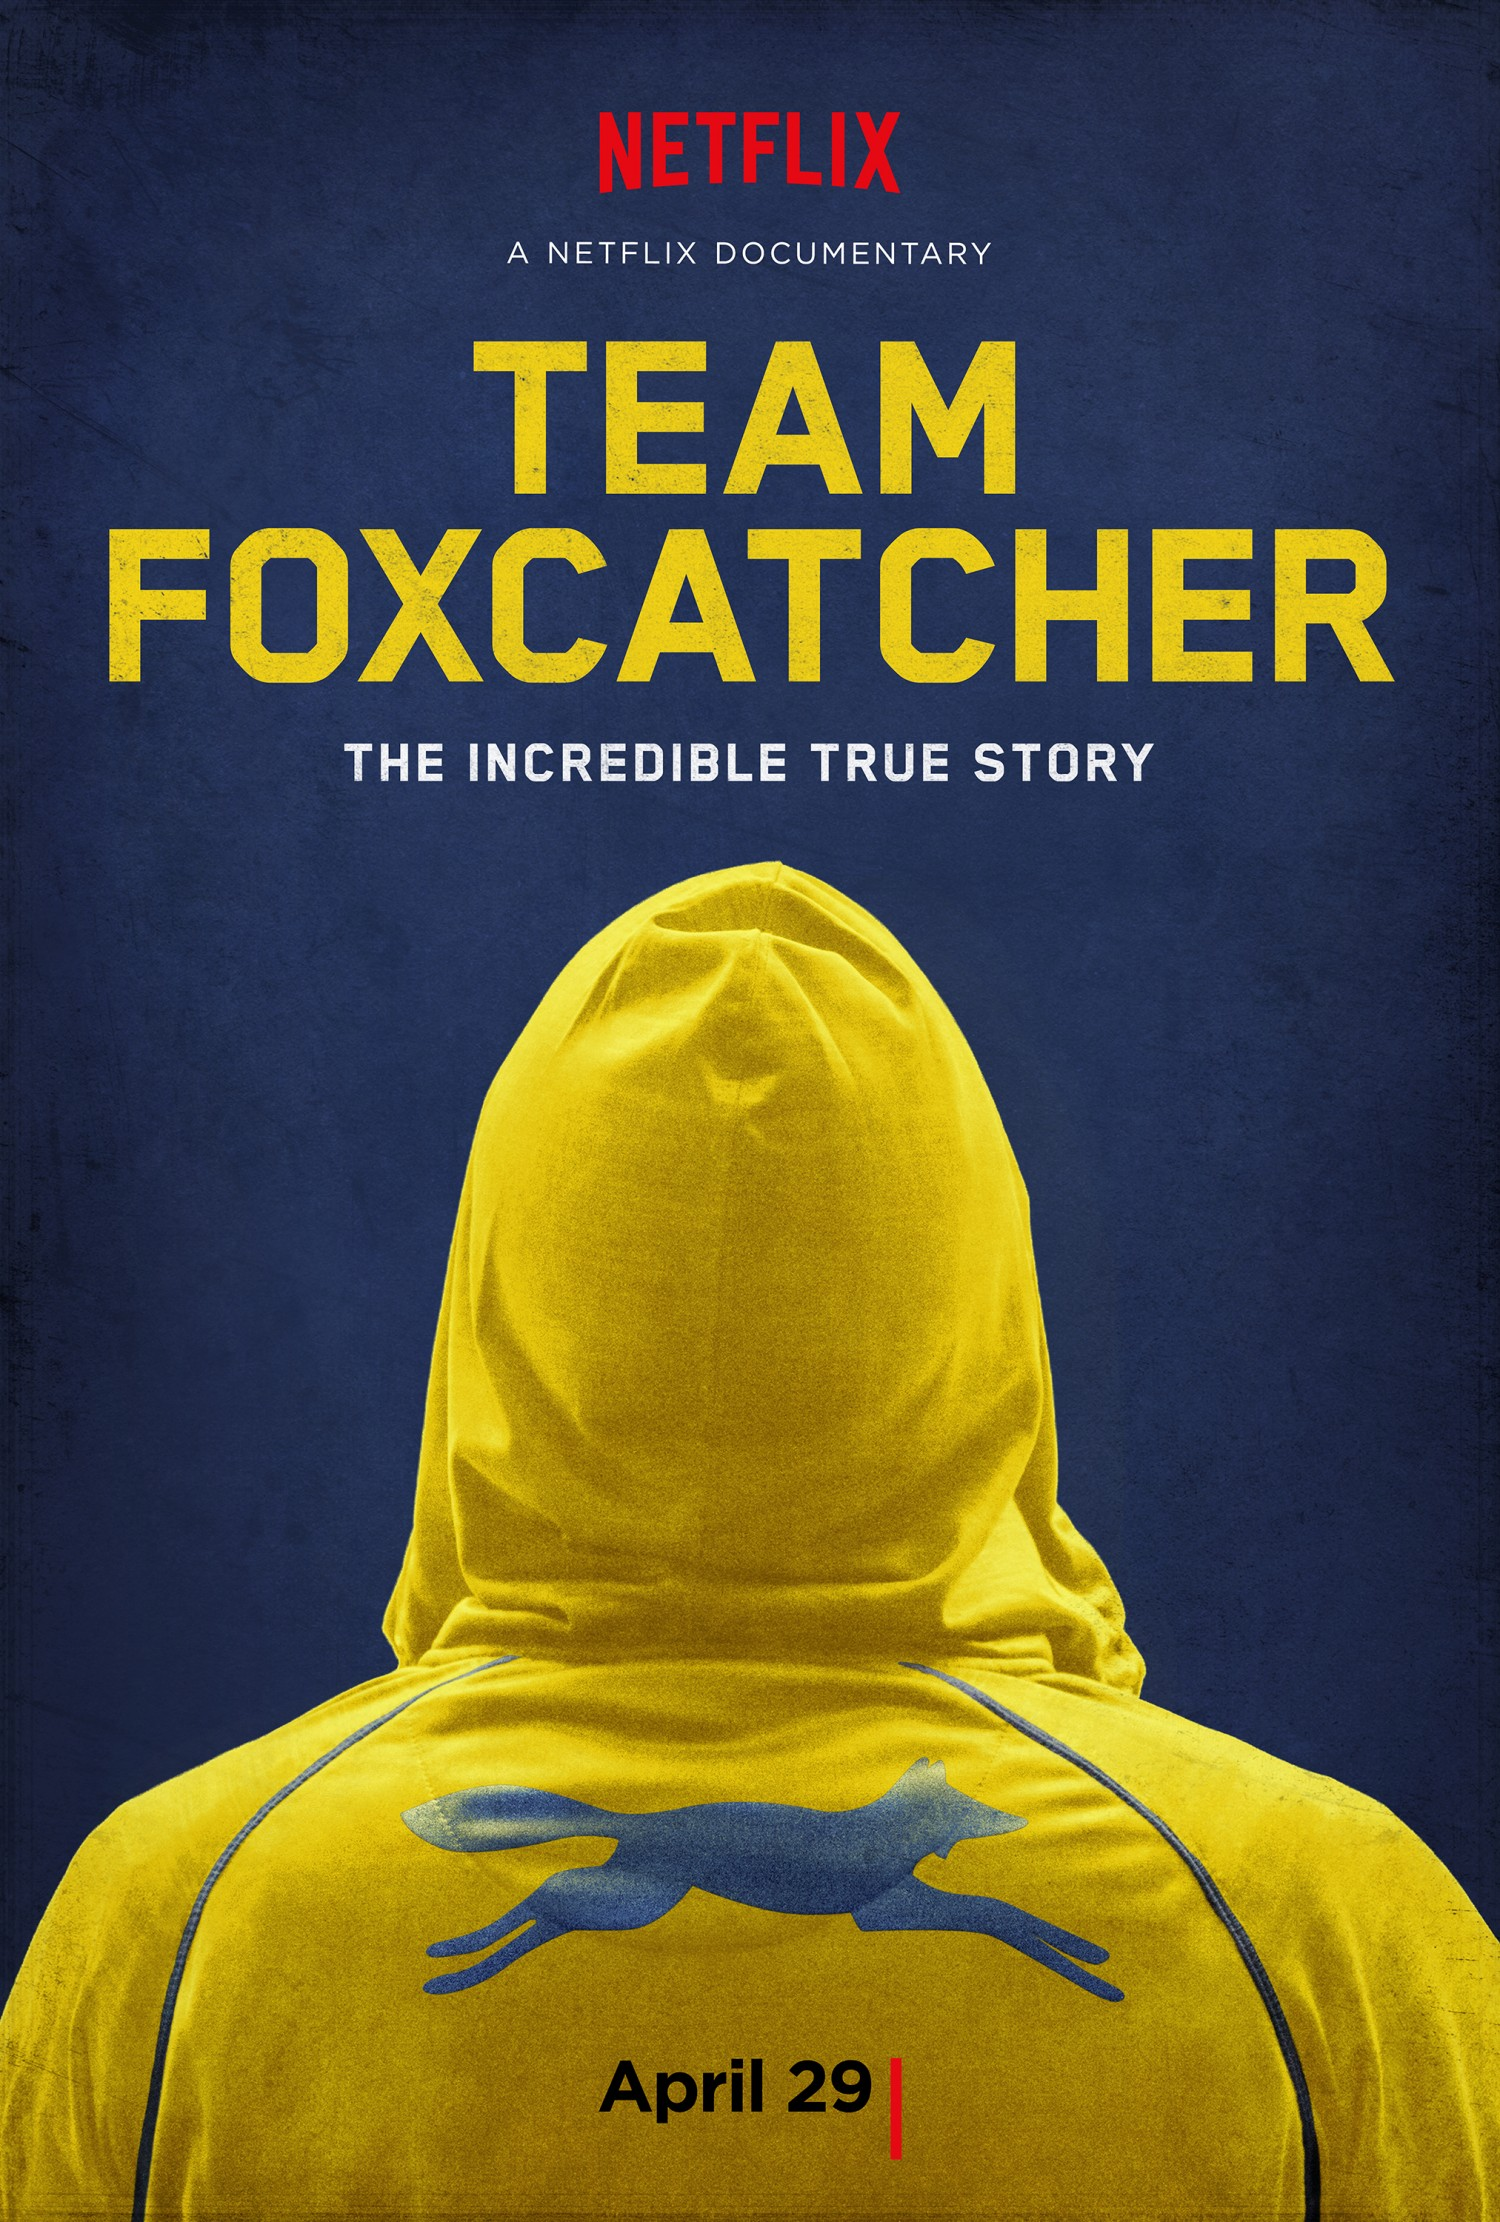 Team Foxcatcher - For Team Foxcatcher director Jon Greenhalgh collaborated with Nancy Schultz, the widow of Olympic wrestler Dave Schultz, whose senseless murder is the central narrative within the film. The movie chronicles the harrowing downward spiral of eccentric billionaire turned murderer John E. du Pont, told by the tight-knit community of wrestlers that lost a friend, a mentor, and one of the most beloved figures in the history of their sport.Team Foxcatcher was edited by Emmy winner Richard Hankin (The Jinx) and premiered at the 2016 Tribeca Film Festival. In 2017, the film was nominated for an Emmy in the Outstanding Historical Documentary category. Team Foxcatcher was acquired by Lisa Nishimura as a Netflix Original and is currently streaming on the service.